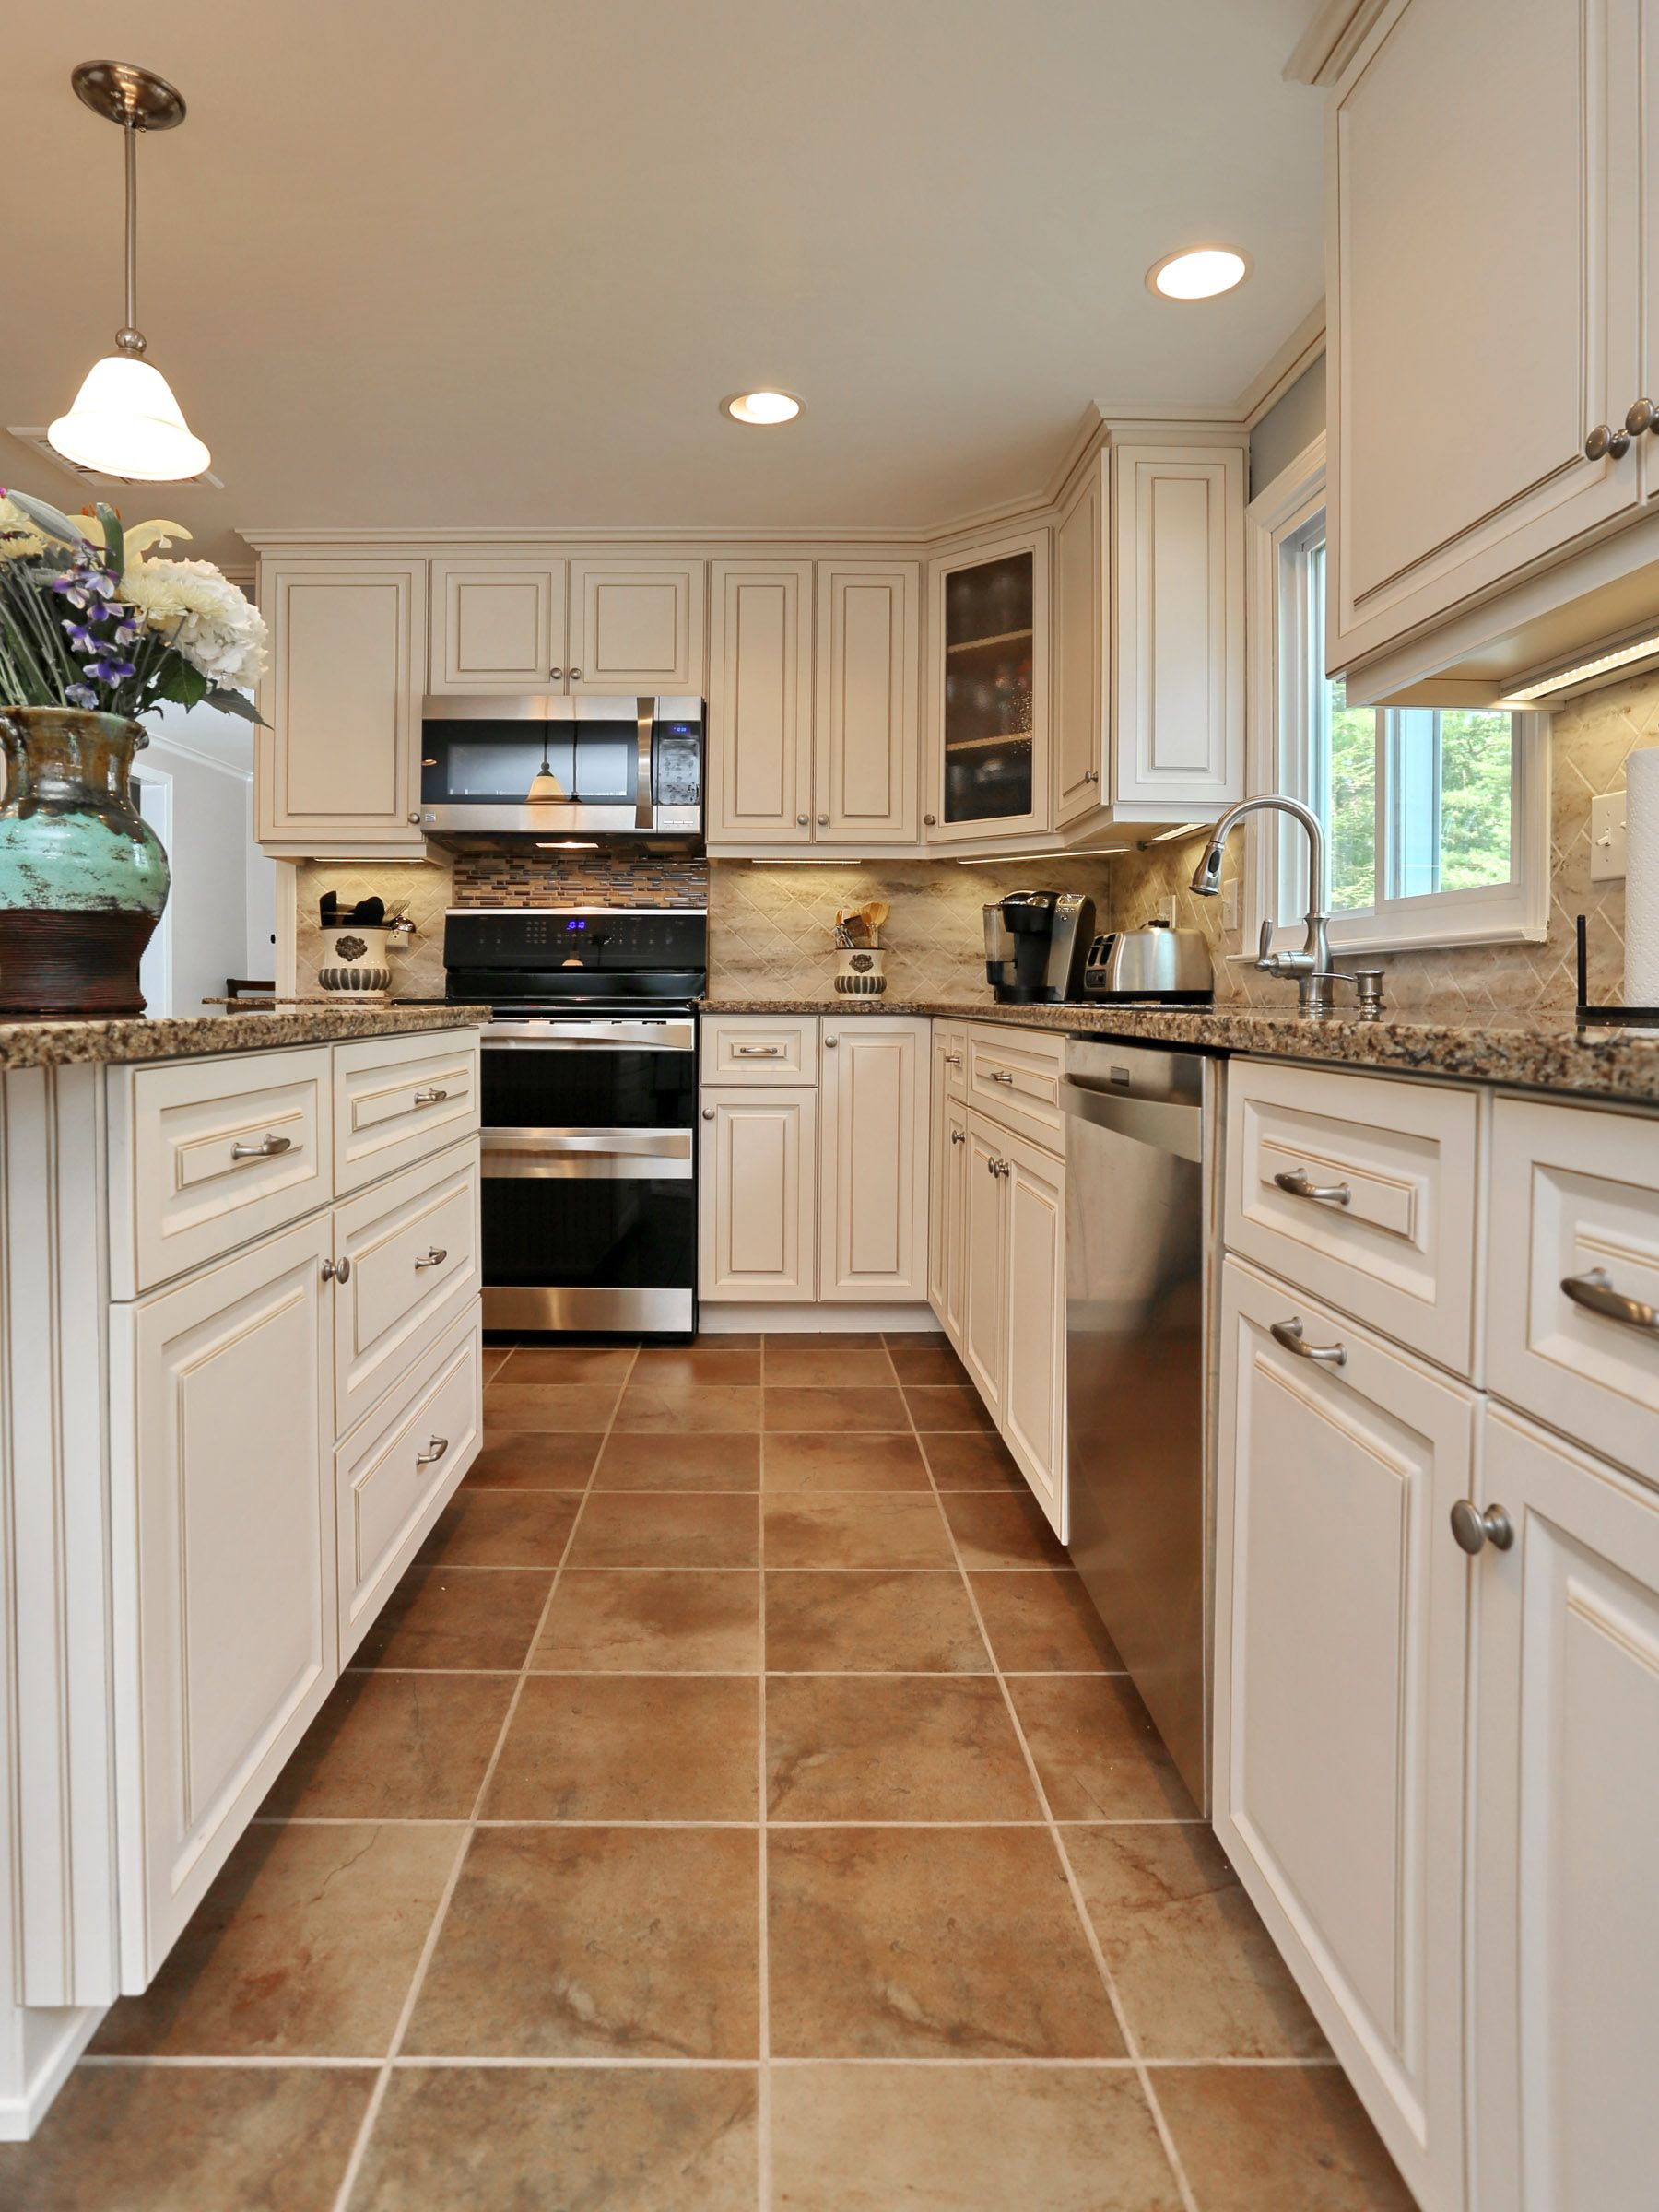 Have You Ever Seen A Canterbury Kitchen Antique White Kitchen Kitchen Flooring Tuscan Kitchen